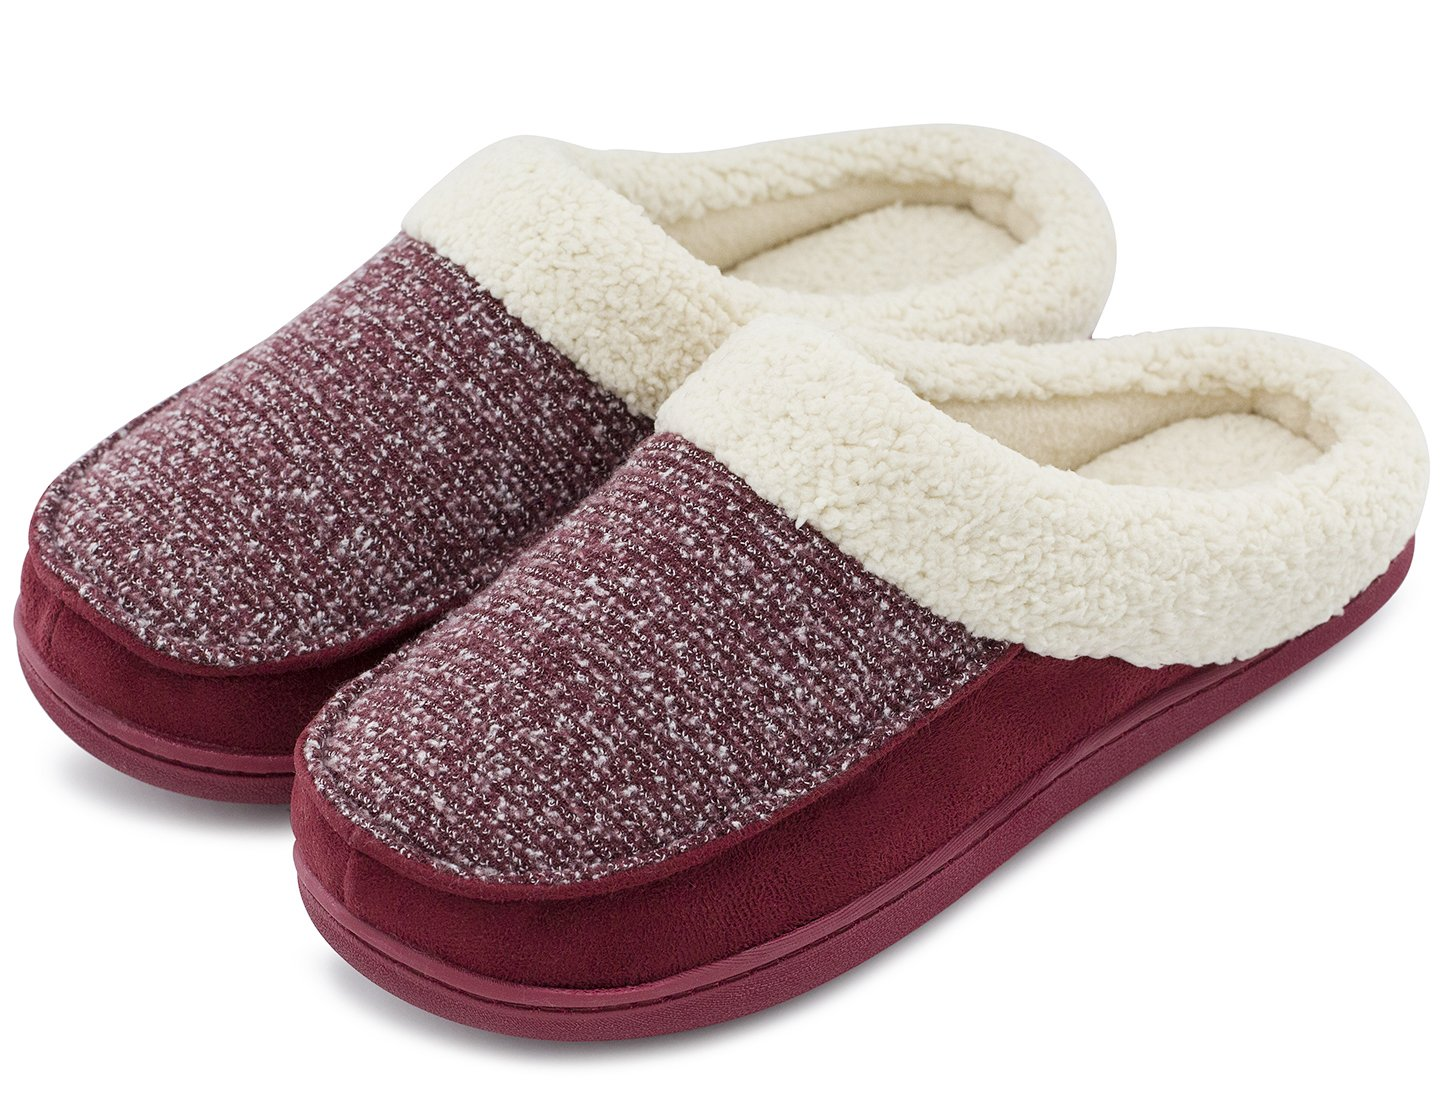 Women's Comfort Memory Foam Slippers Fuzzy Wool Plush Slip-On Clog House Shoes w/Indoor & Outdoor Sole (Large / 9-10 B(M) US, Burgundy)